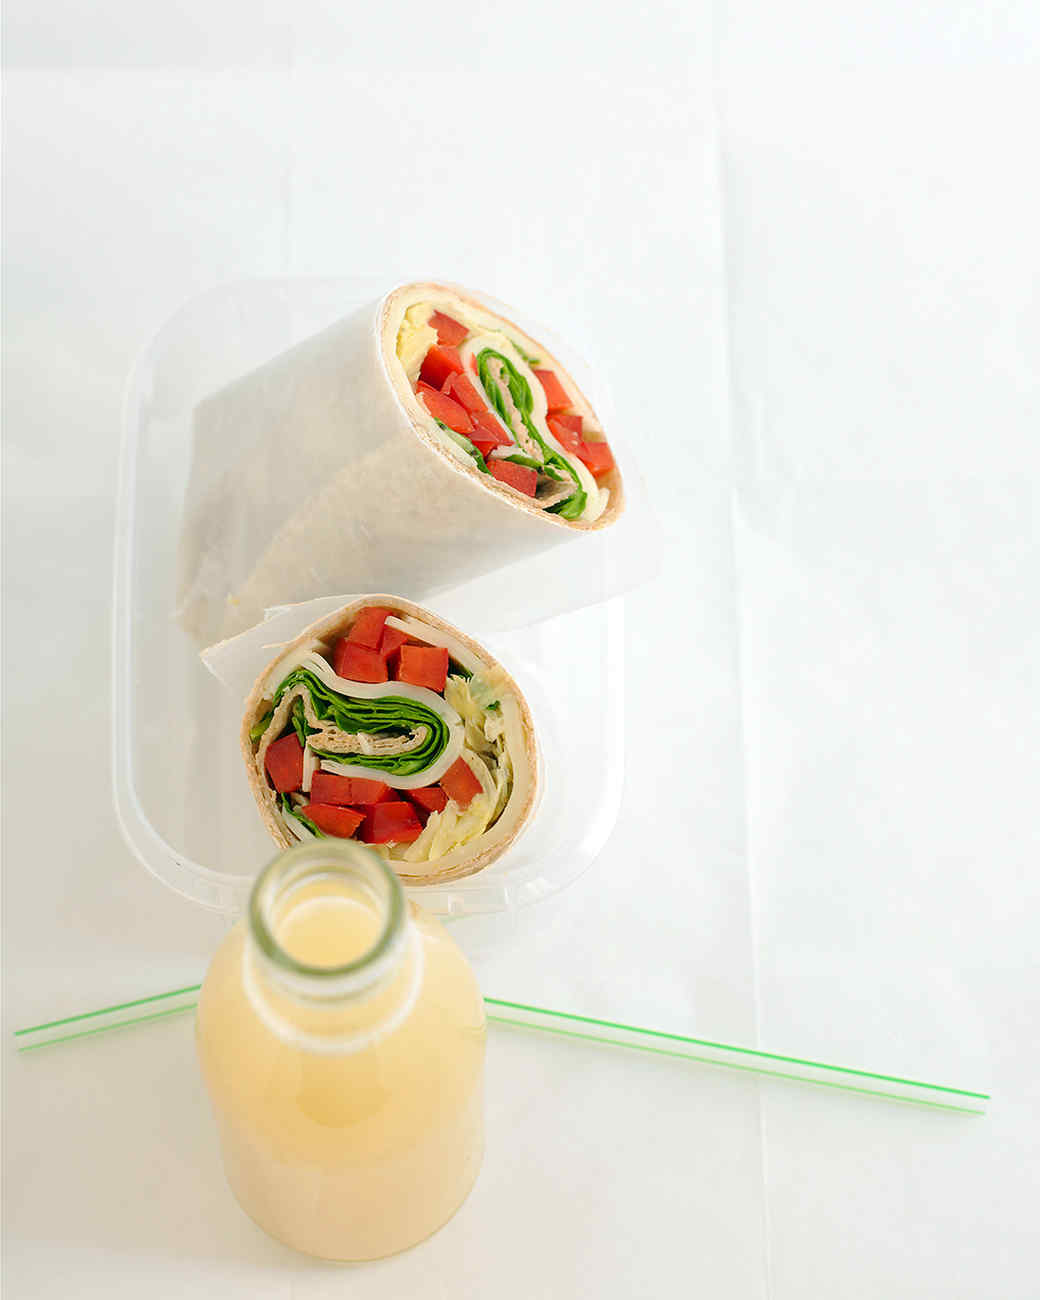 edf_jul06_lunchbox_wrap.jpg